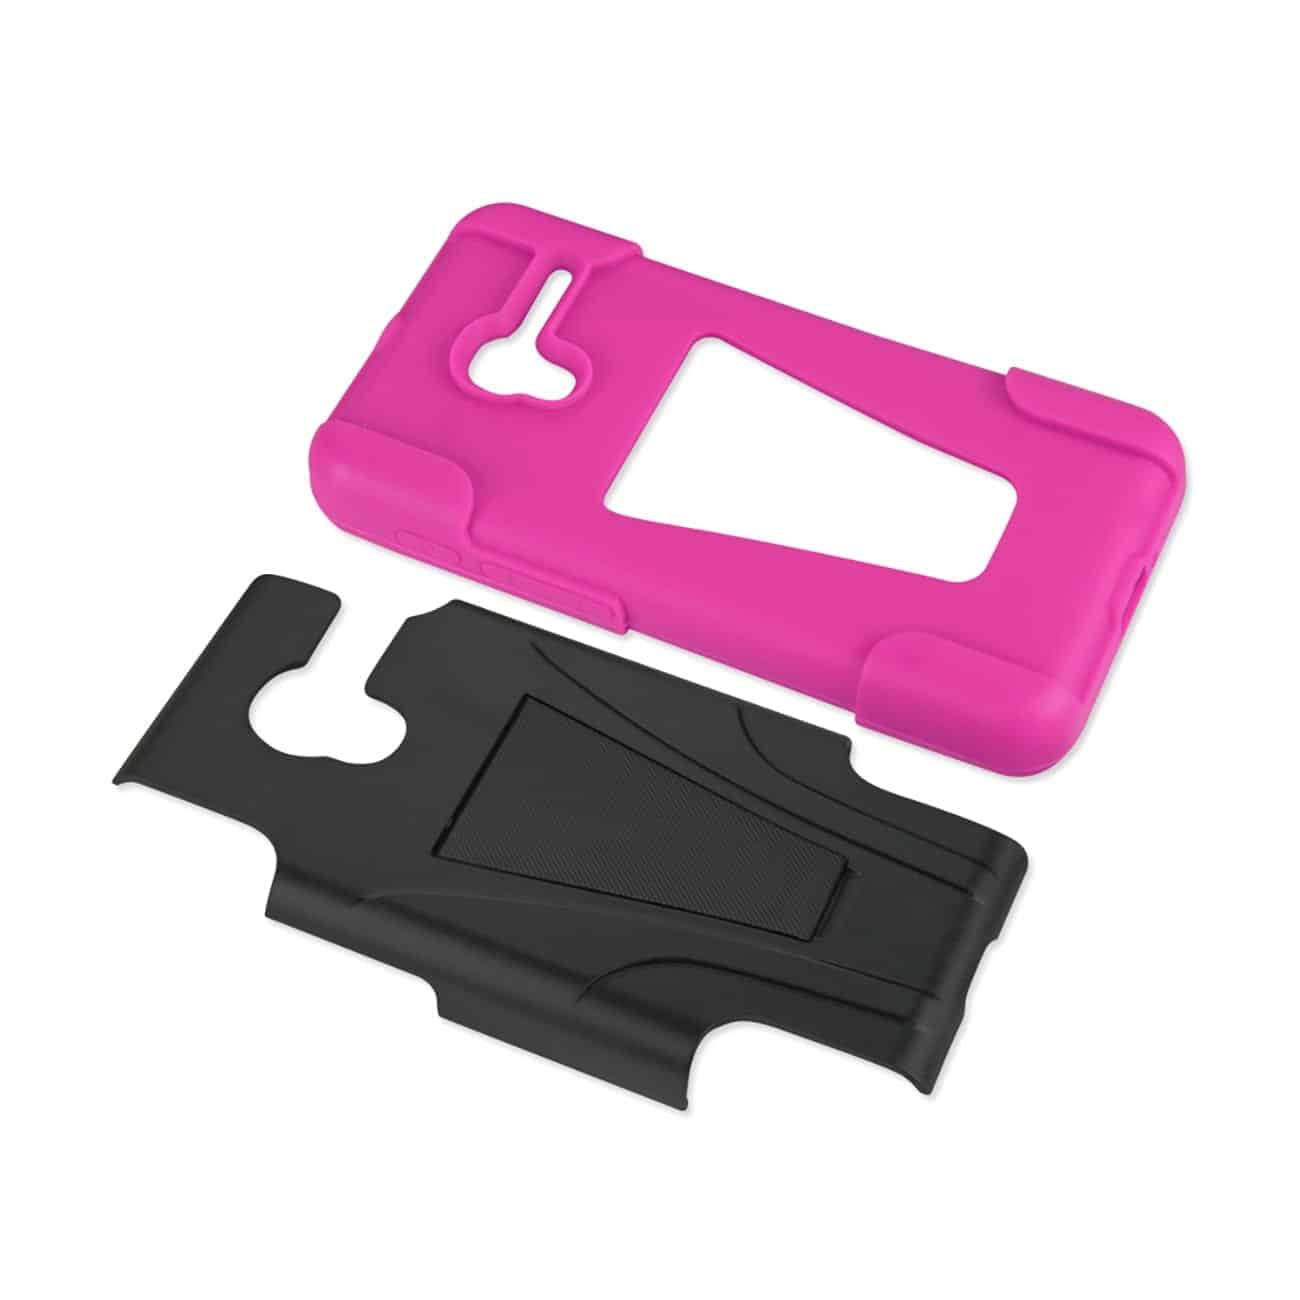 ALCATEL ONETOUCH PIXI 3 HYBRID HEAVY DUTY CASE WITH KICKSTAND IN HOT PINK BLACK